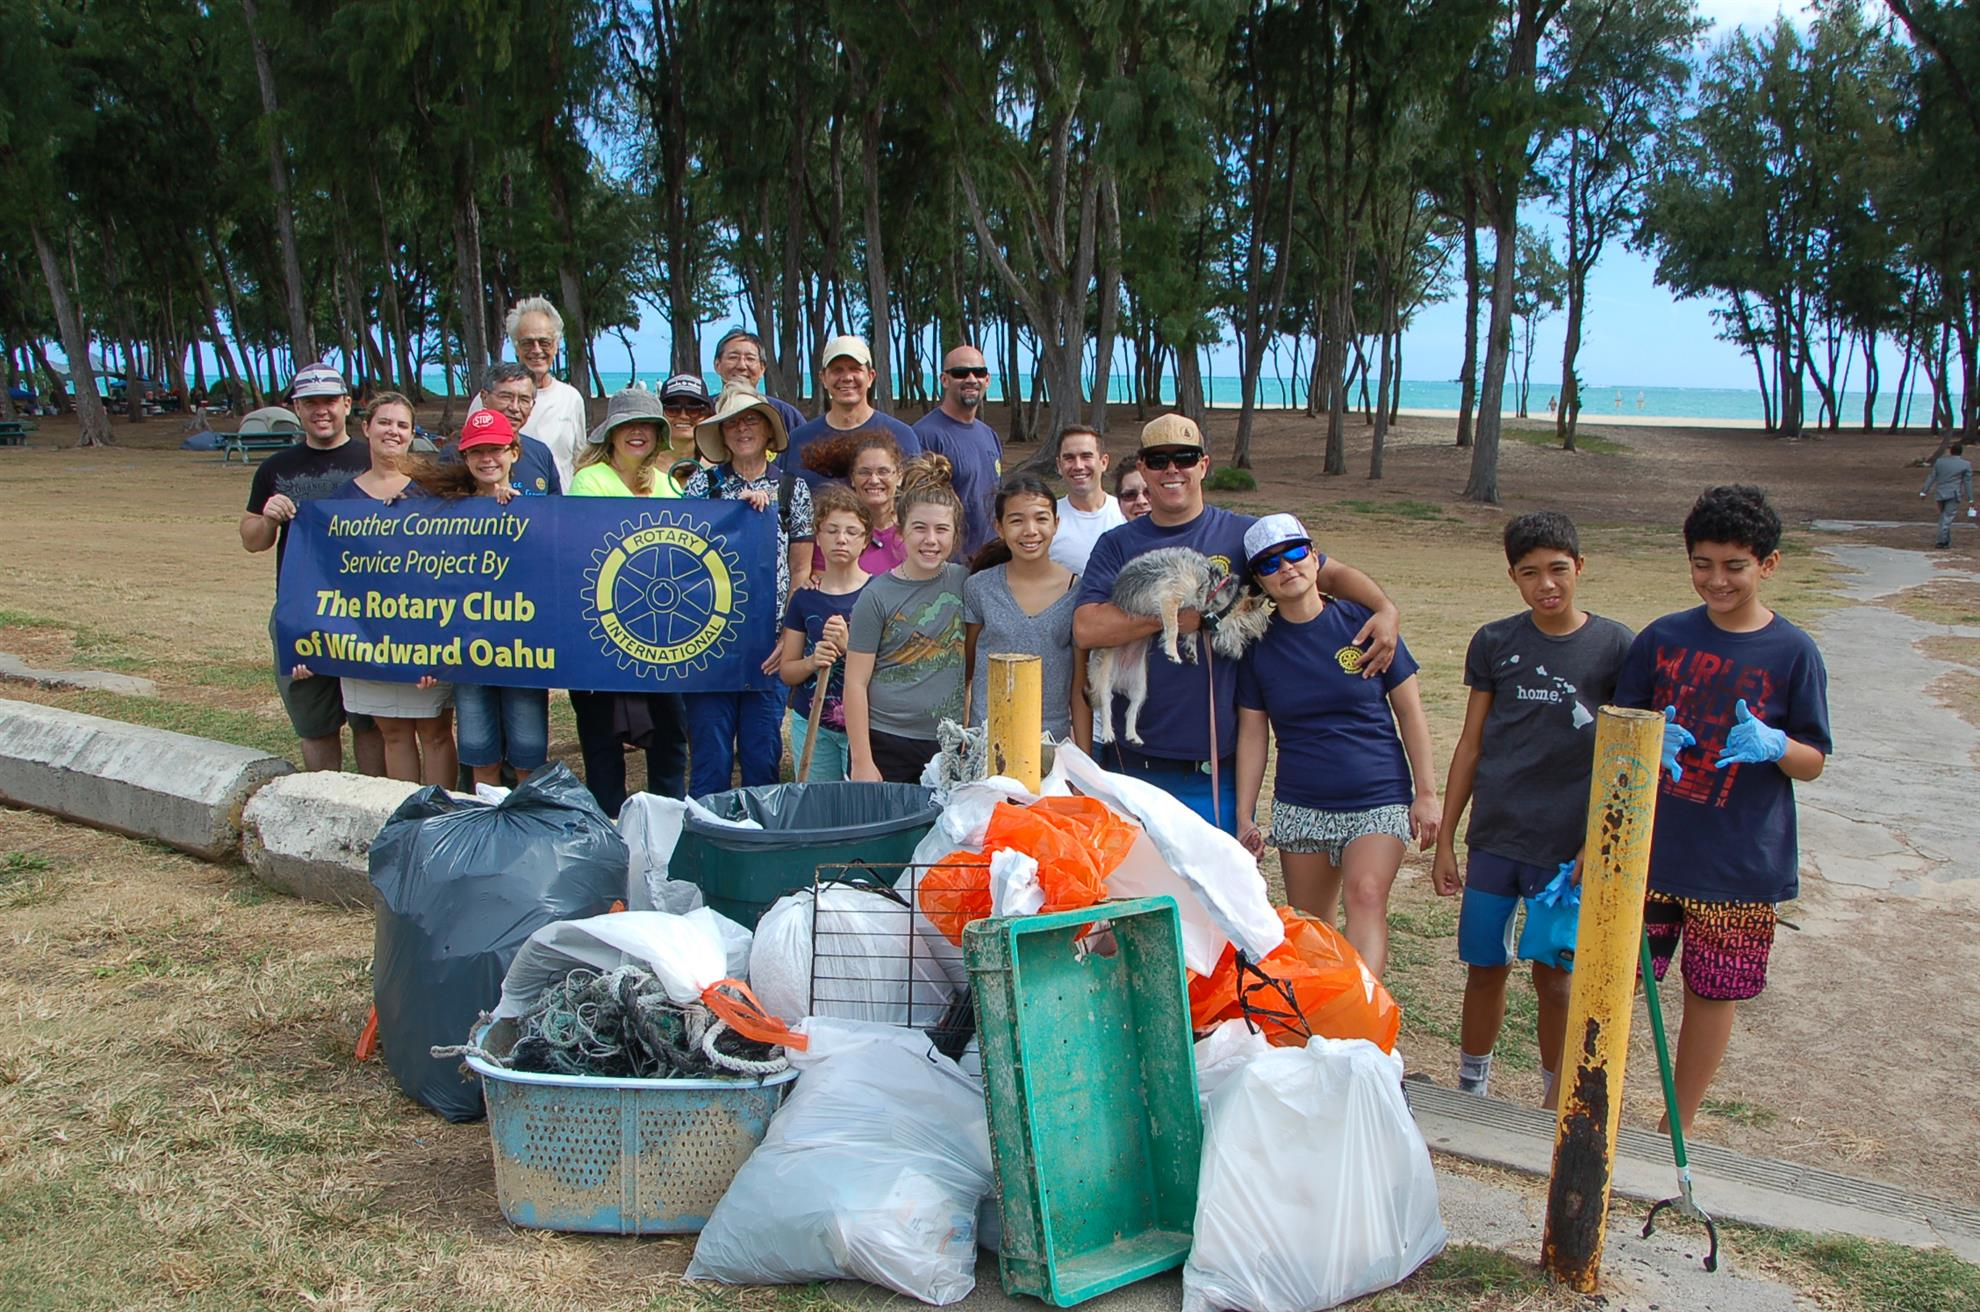 10 16 2016 Beach Cleanup Rotary Club Of Windward Oahu Sunrise Kailua